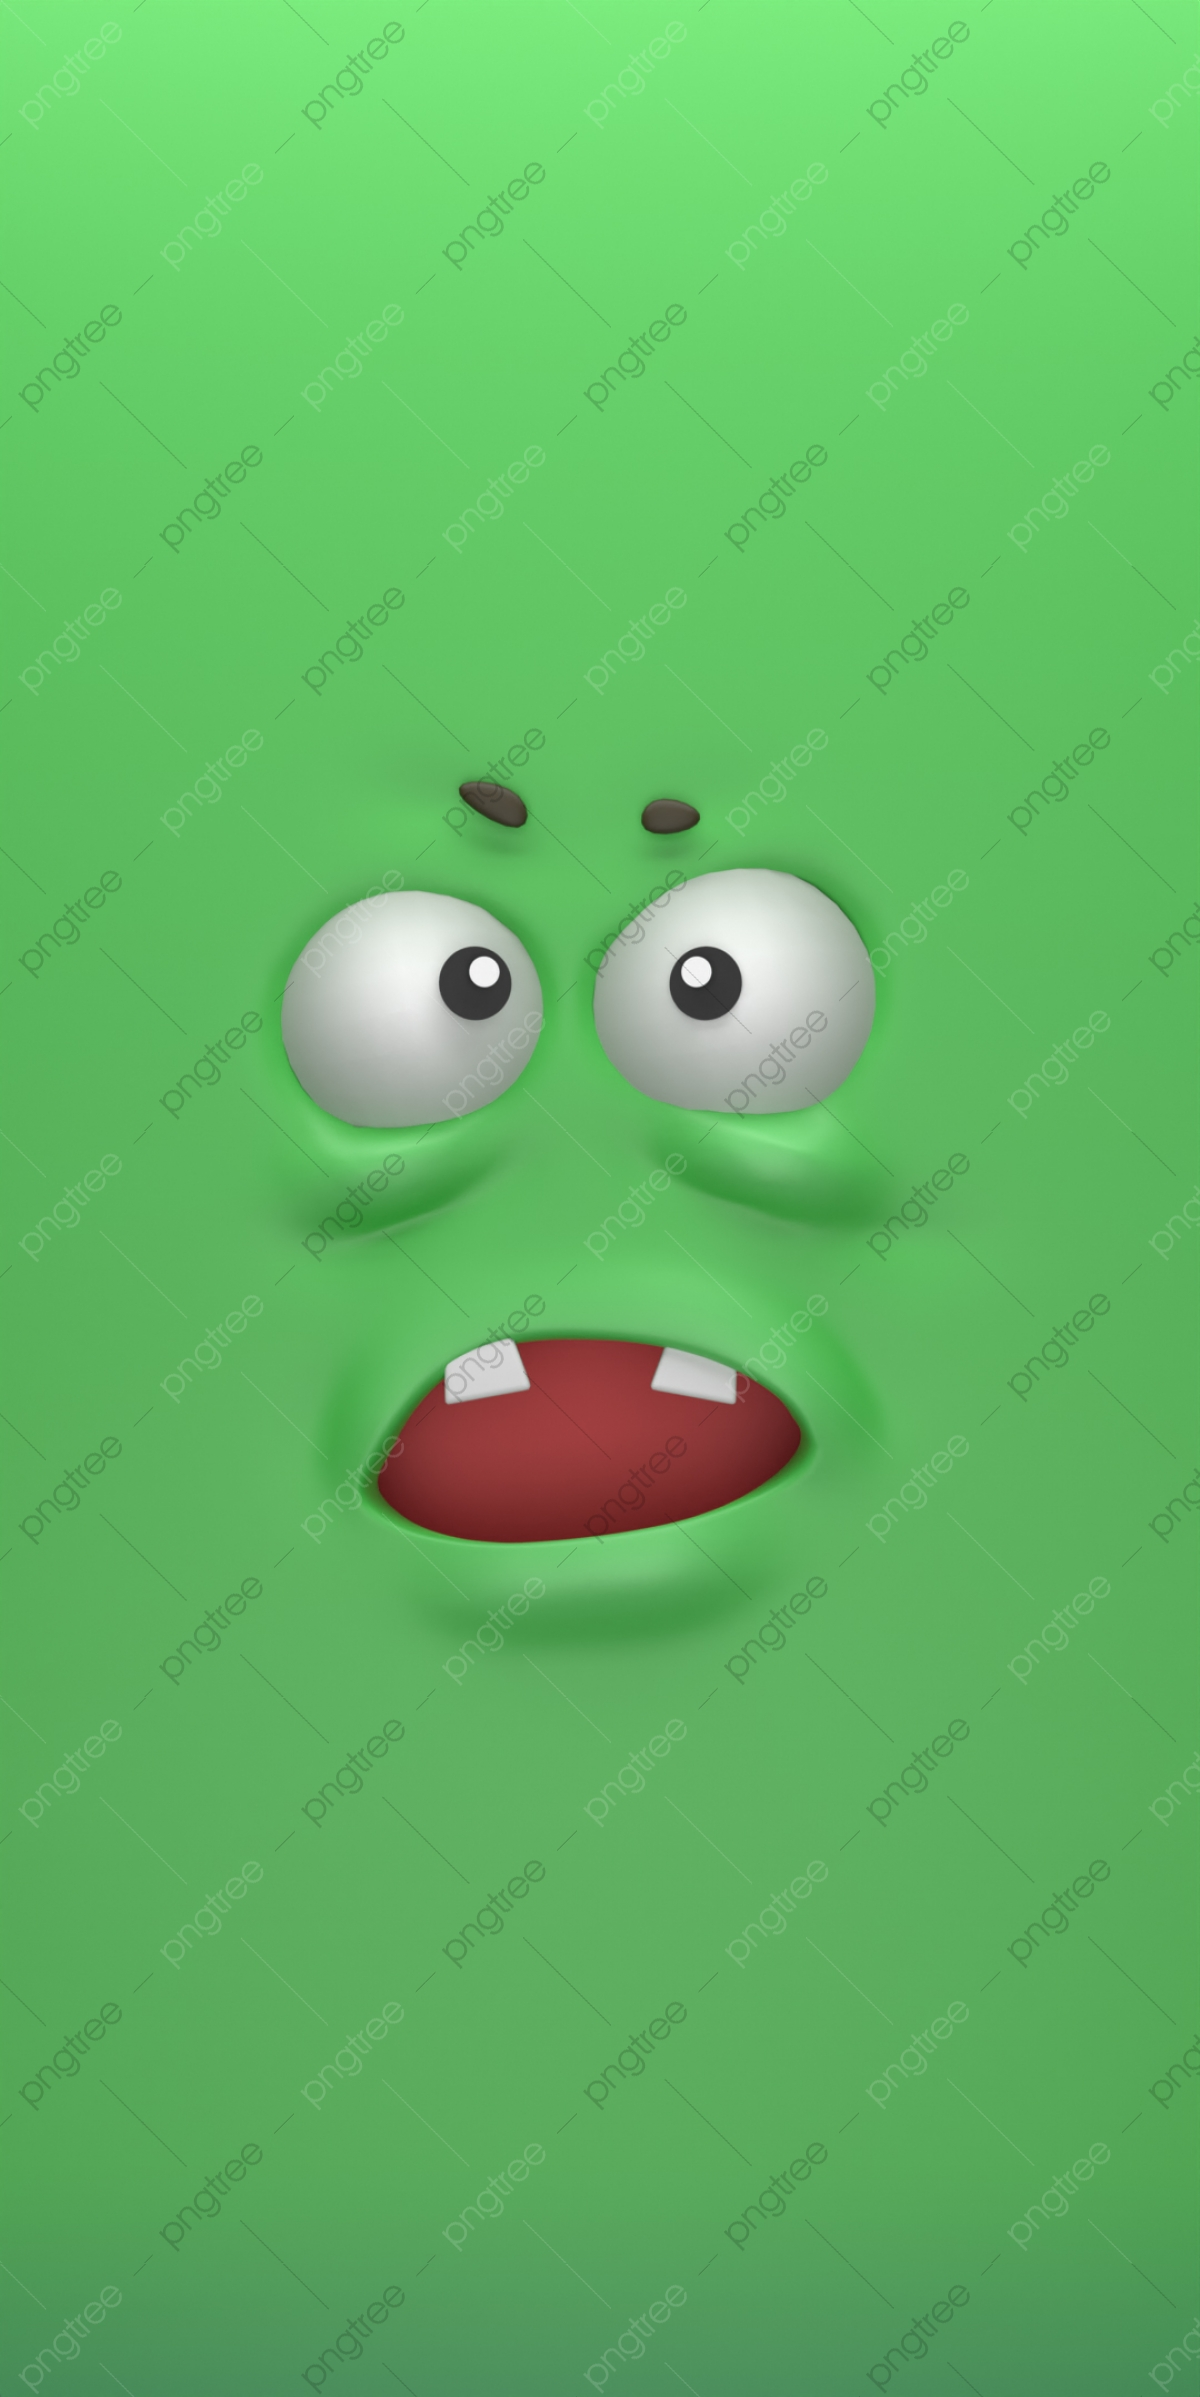 Green 3d Cartoon Expression Mobile Phone Wallpaper 3d Phone Wallpaper Big Eyes Background Image For Free Download